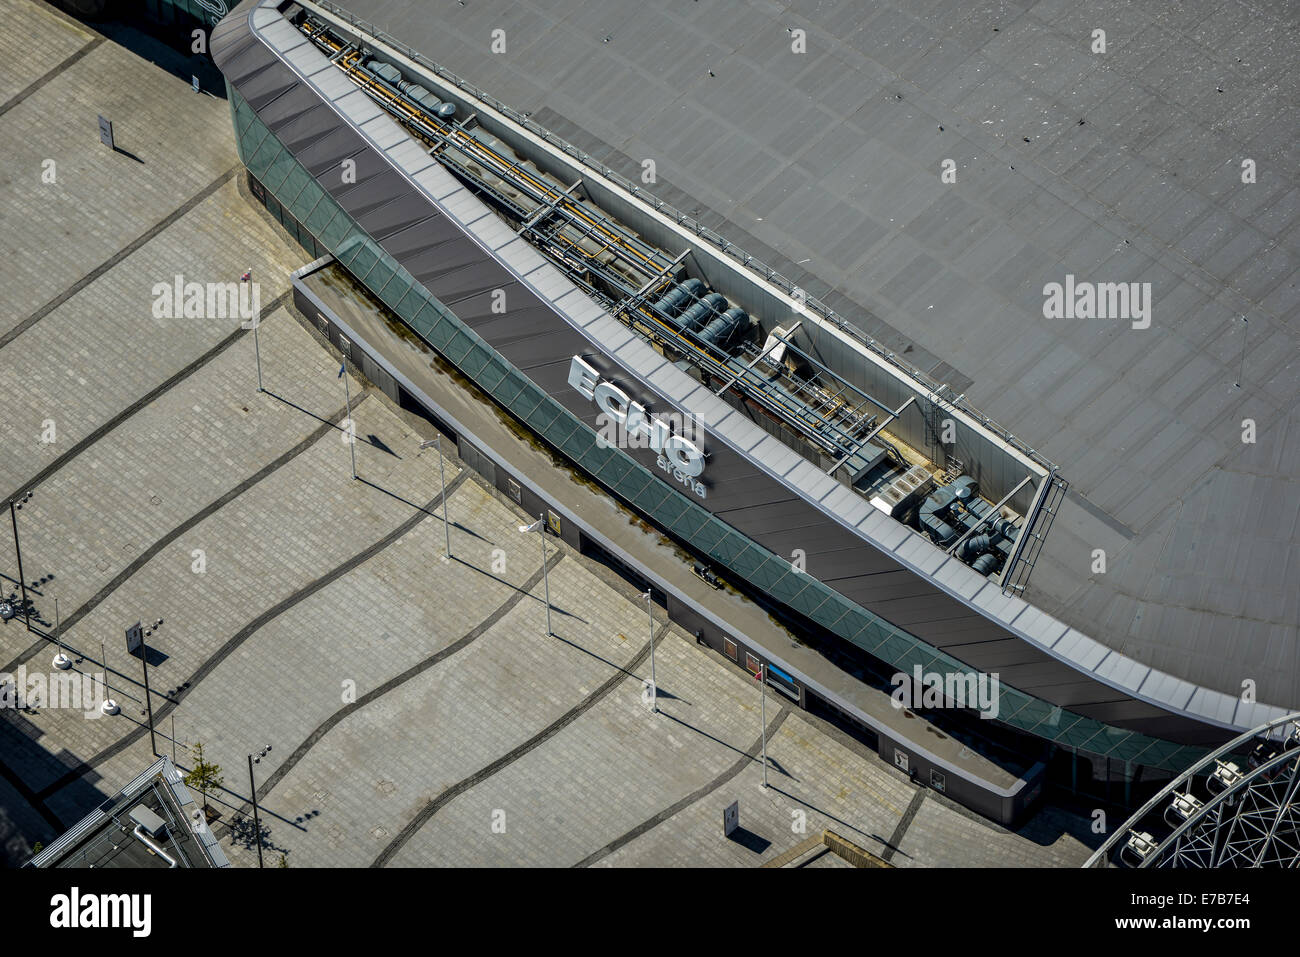 A close up aerial view of the Liverpool Echo Arena - Stock Image